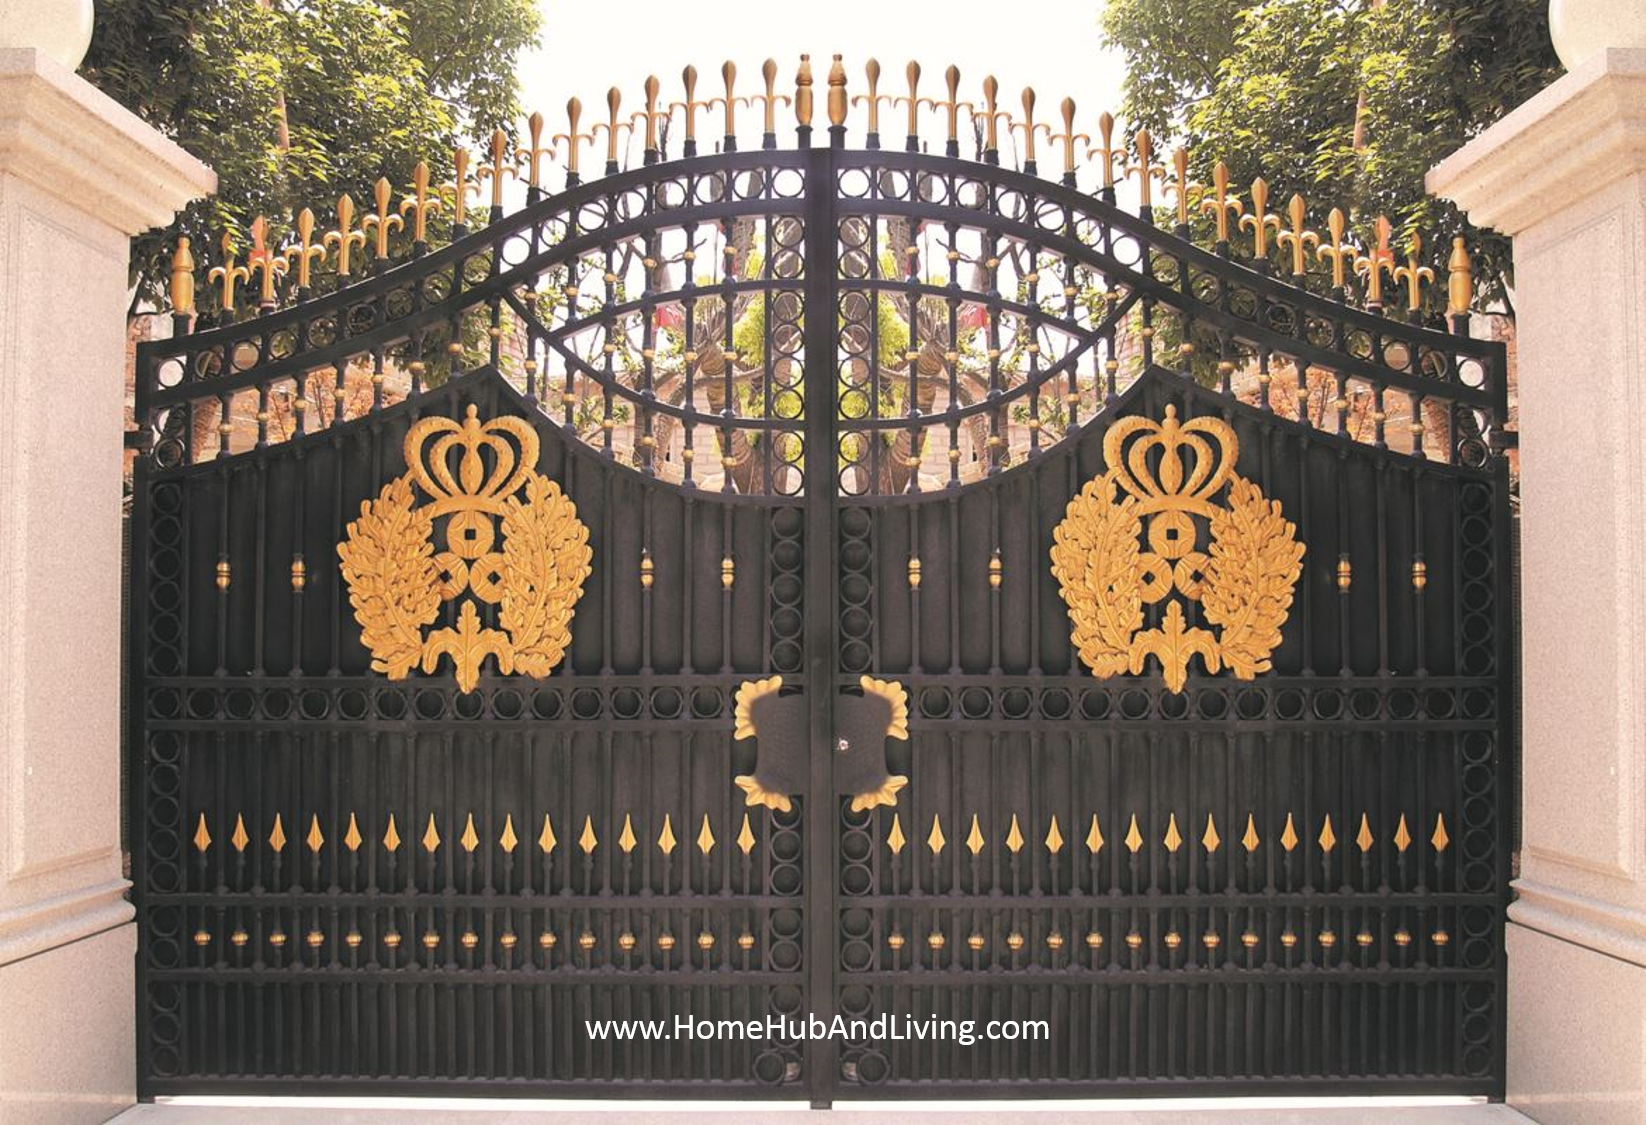 http://www.homehubandliving.com/wp-content/uploads/2014/02/Grand-Entrance-French-design-wrought-iron-Gate-FZY-TM024.png